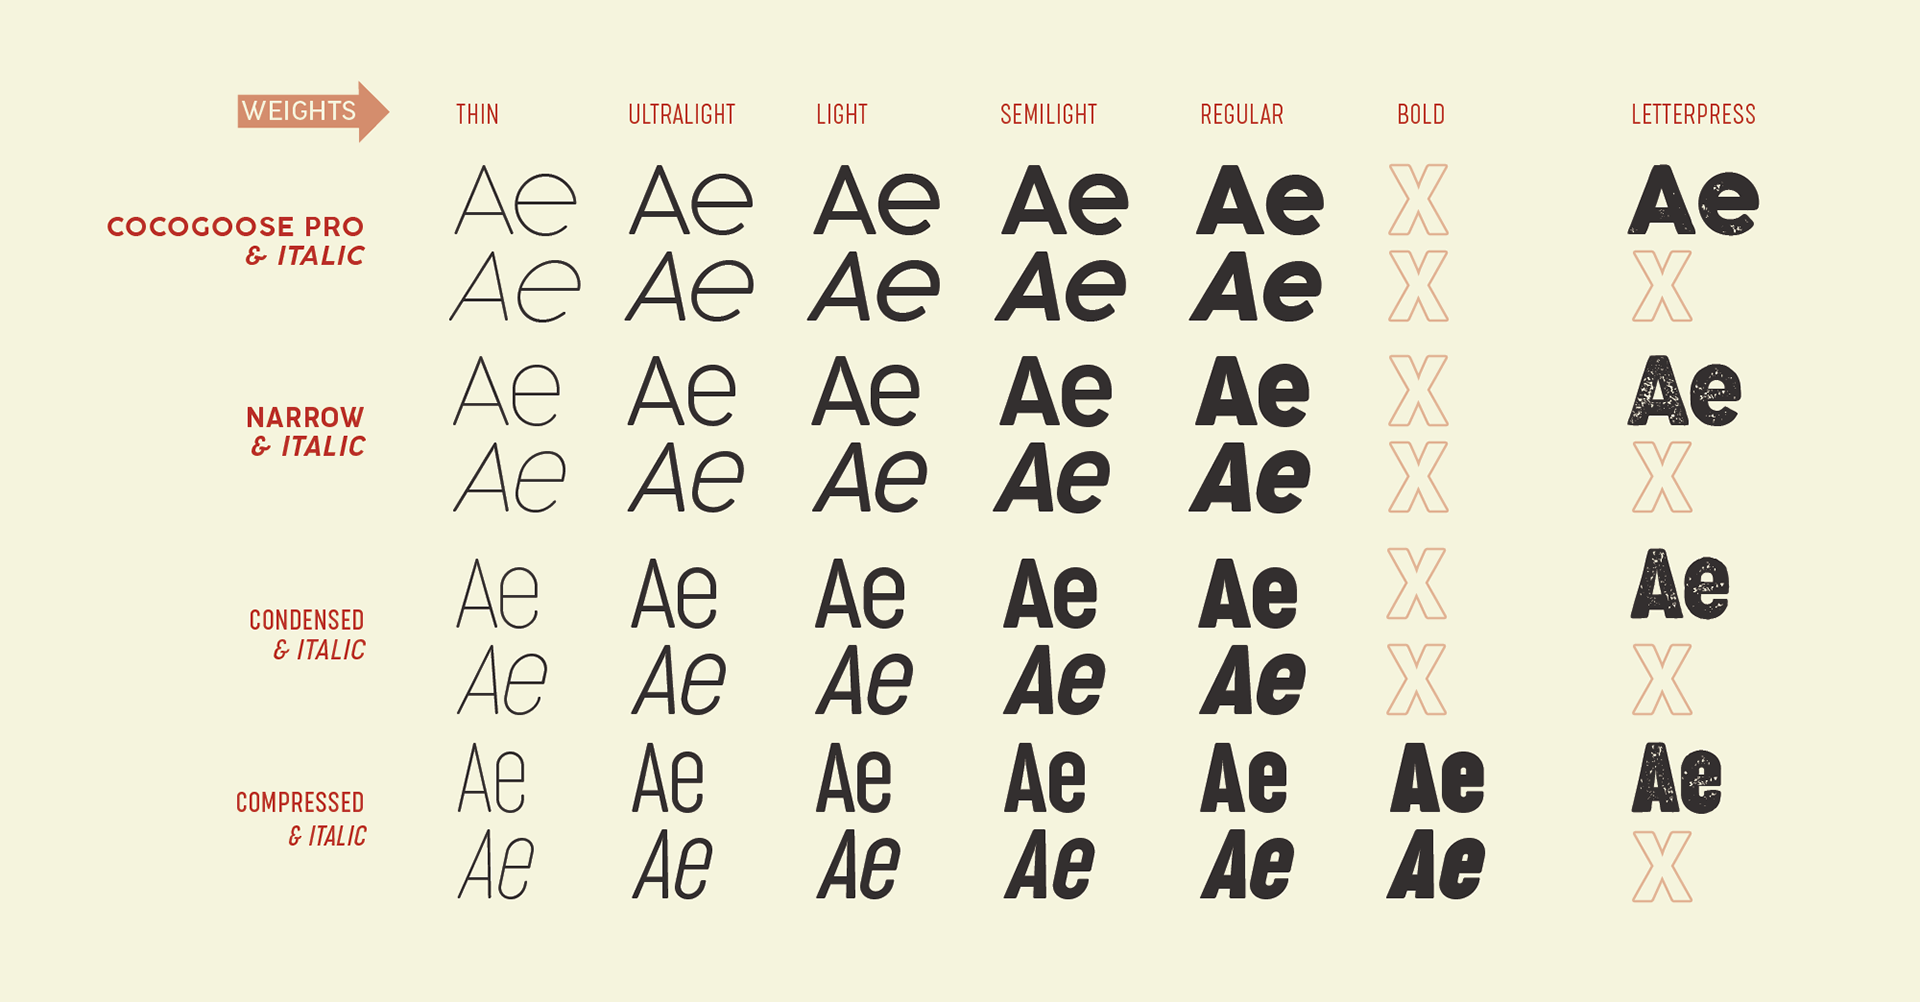 UPDATED: Cocogoose Free Font now with 52 weights on Behance